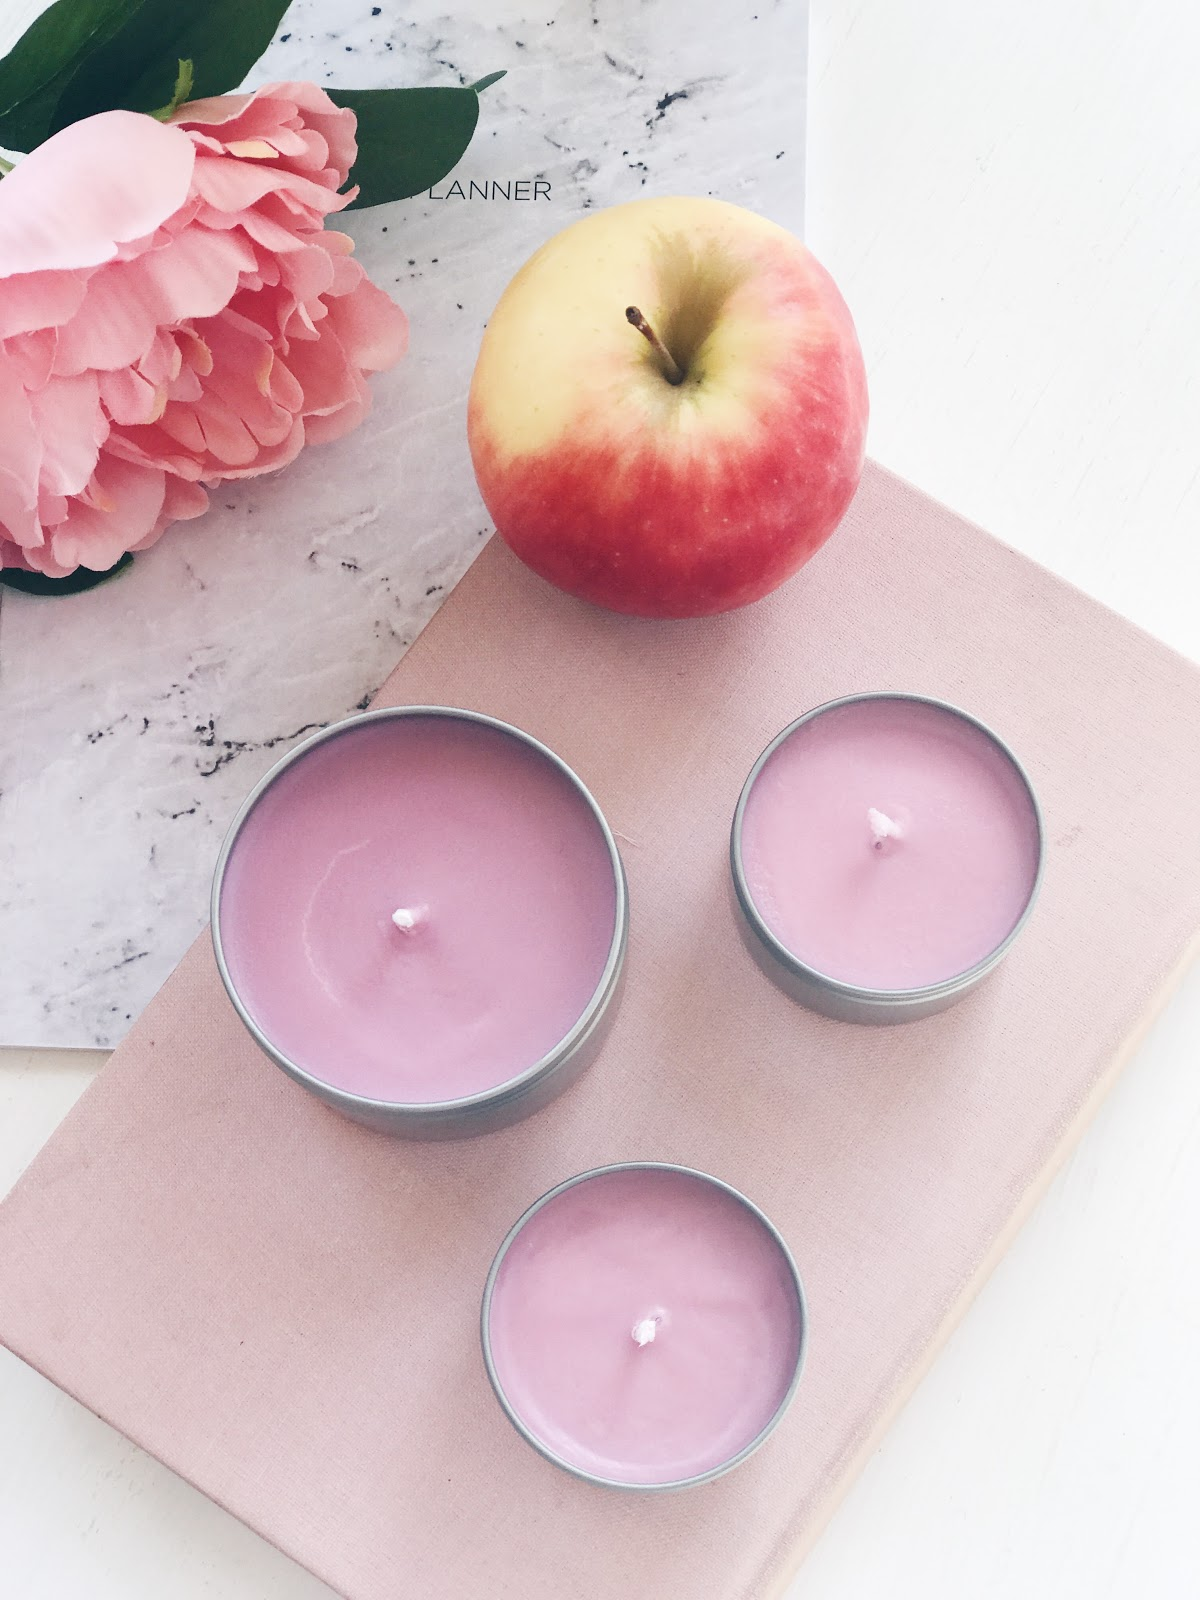 making my own candles, apple scented soy wax candles